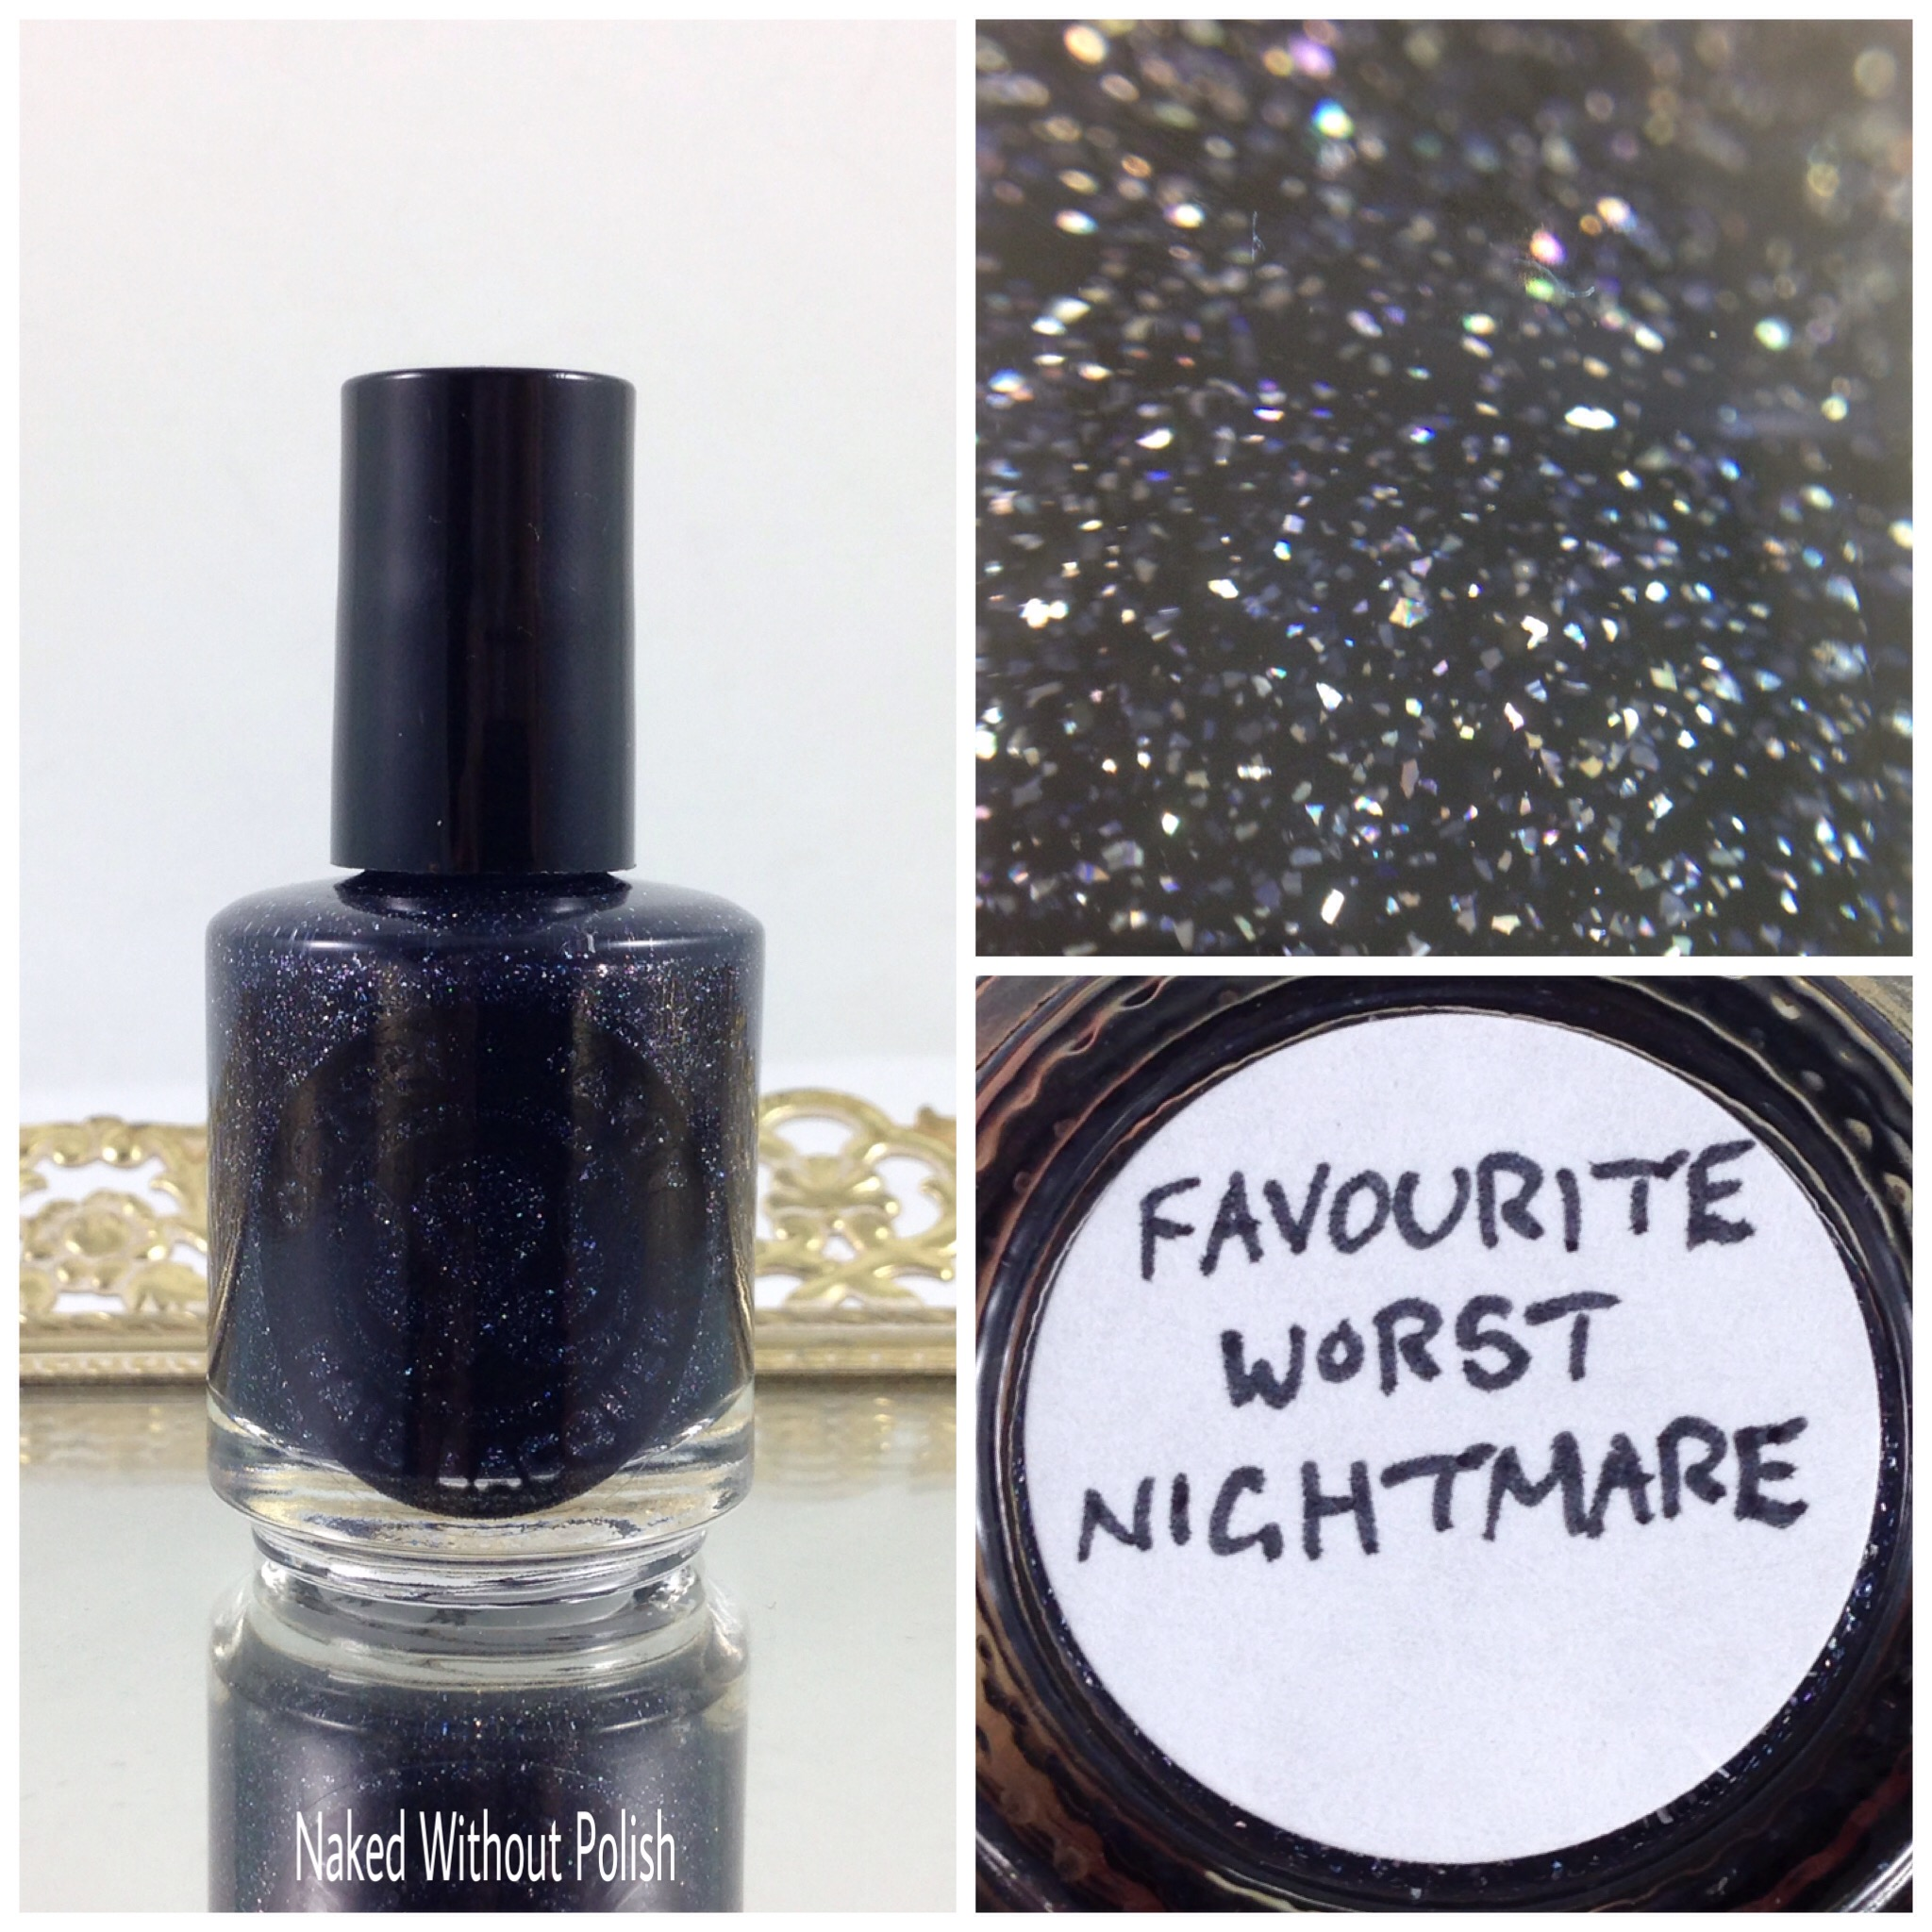 Octopus-Party-Nail-Lacquer-Favourite-Worst-Nightmare-1